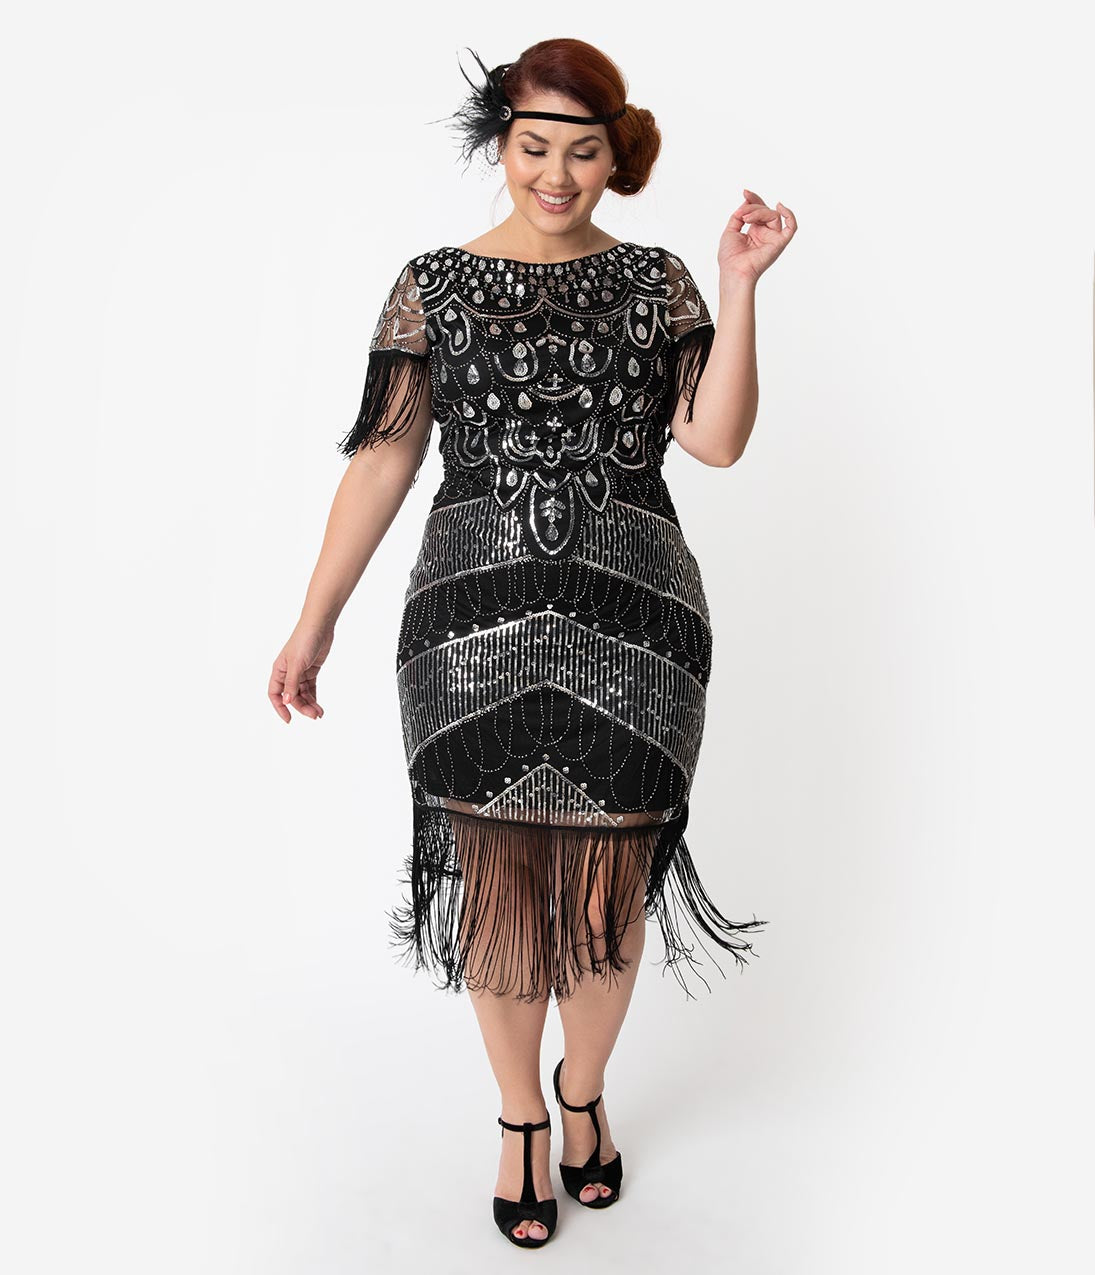 1920s Formal Dresses & Evening Gowns Guide Unique Vintage Plus Size Black  Silver Sequin Fringe Sleeved Laure Flapper Dress $98.00 AT vintagedancer.com